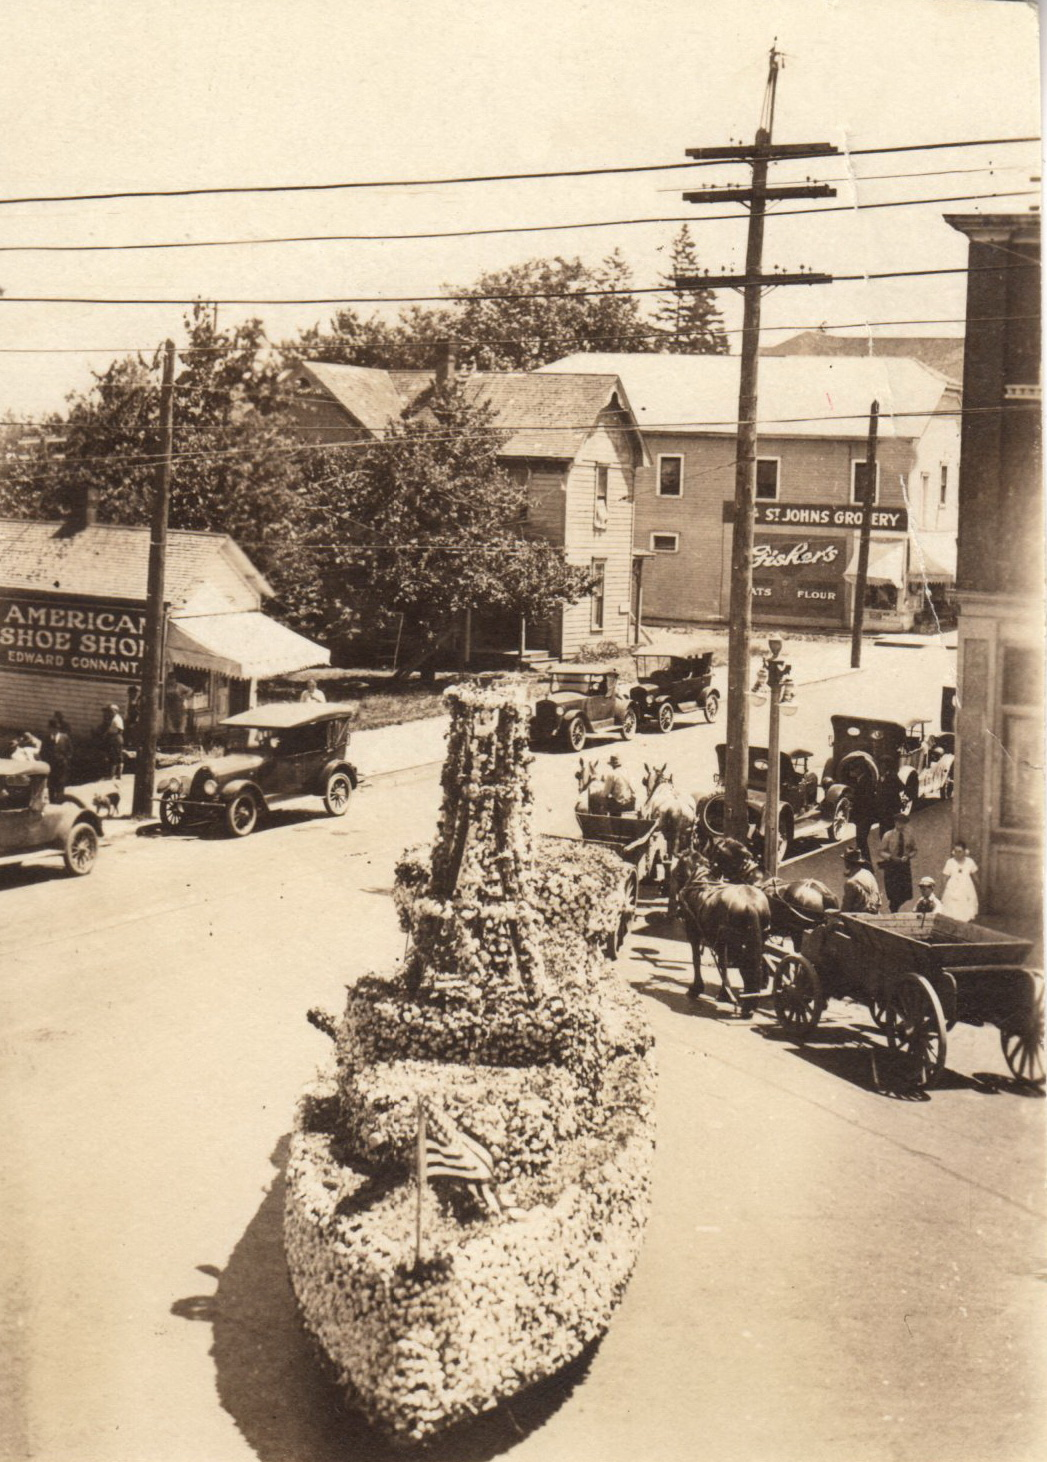 # Original High Res 1920 American Shoe Shop 110 S Jersey-St Johns Grocery 202 S Jersey.jpg